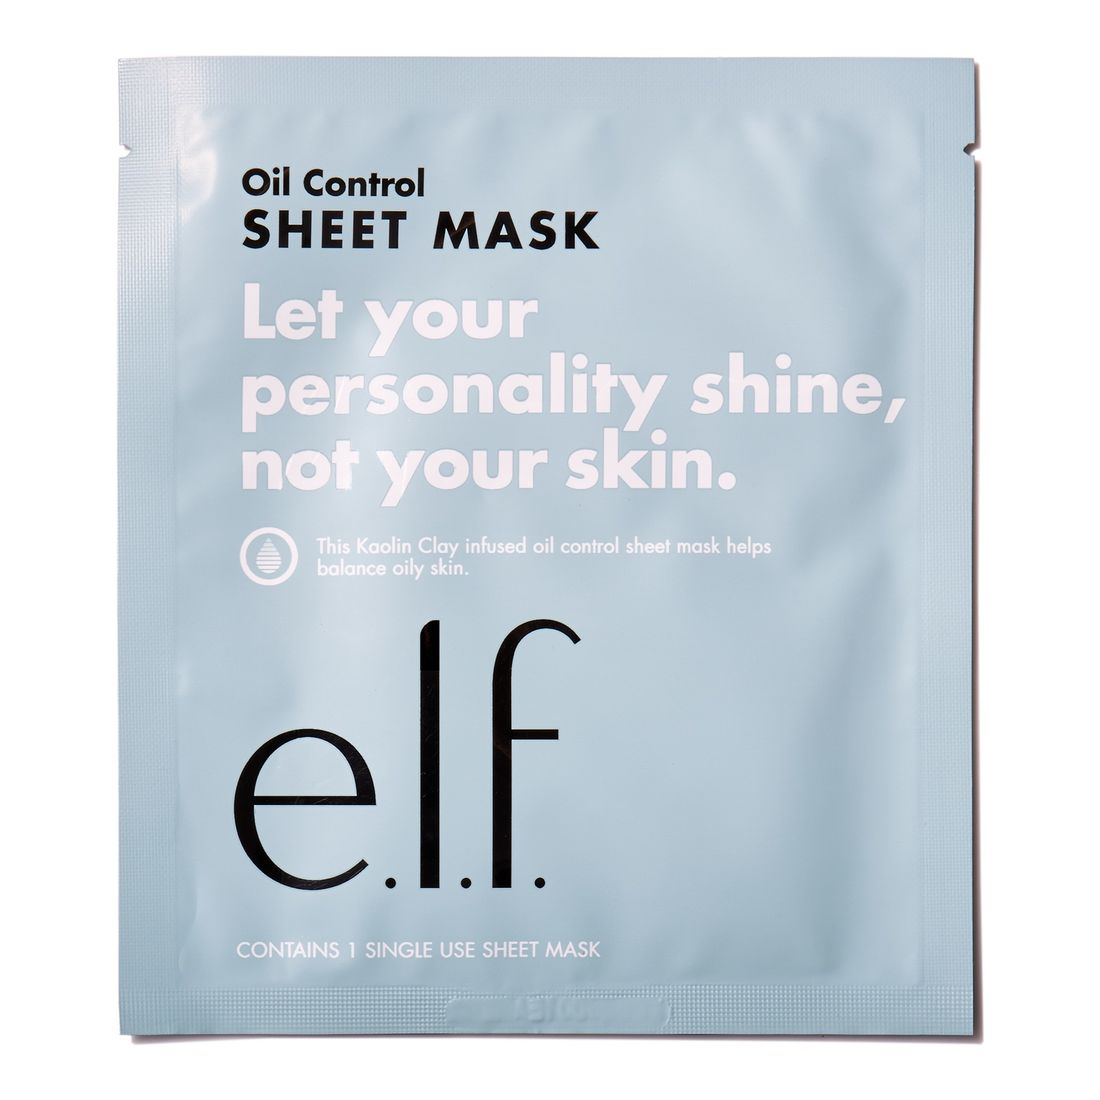 E.L.F OIL CONTROL SHEET MASK